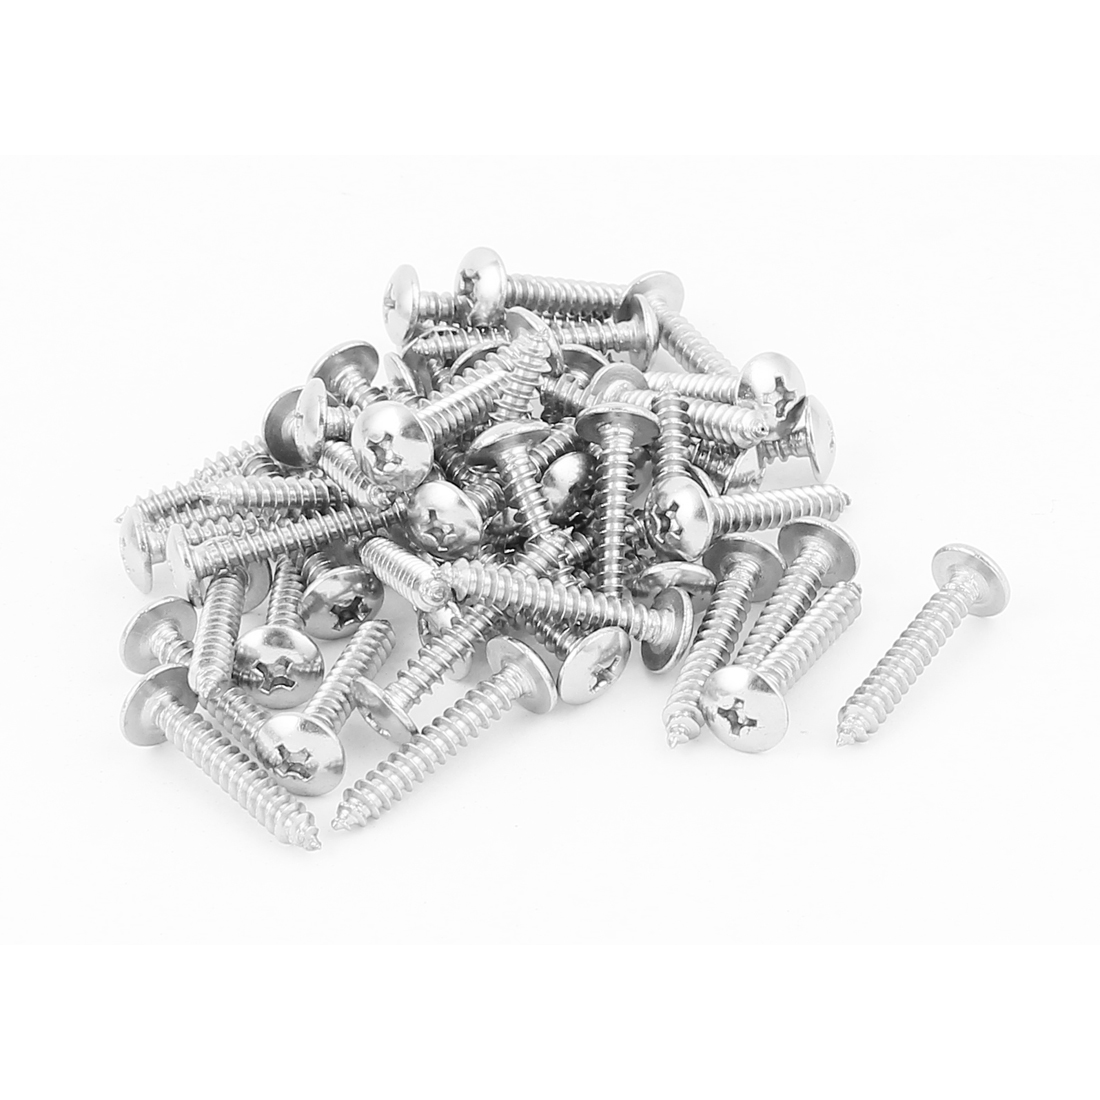 3.9mm x 25mm Phillips Cross Drive Truss Head Self Tapping Screw Fasteners Silver Tone 50 Pcs